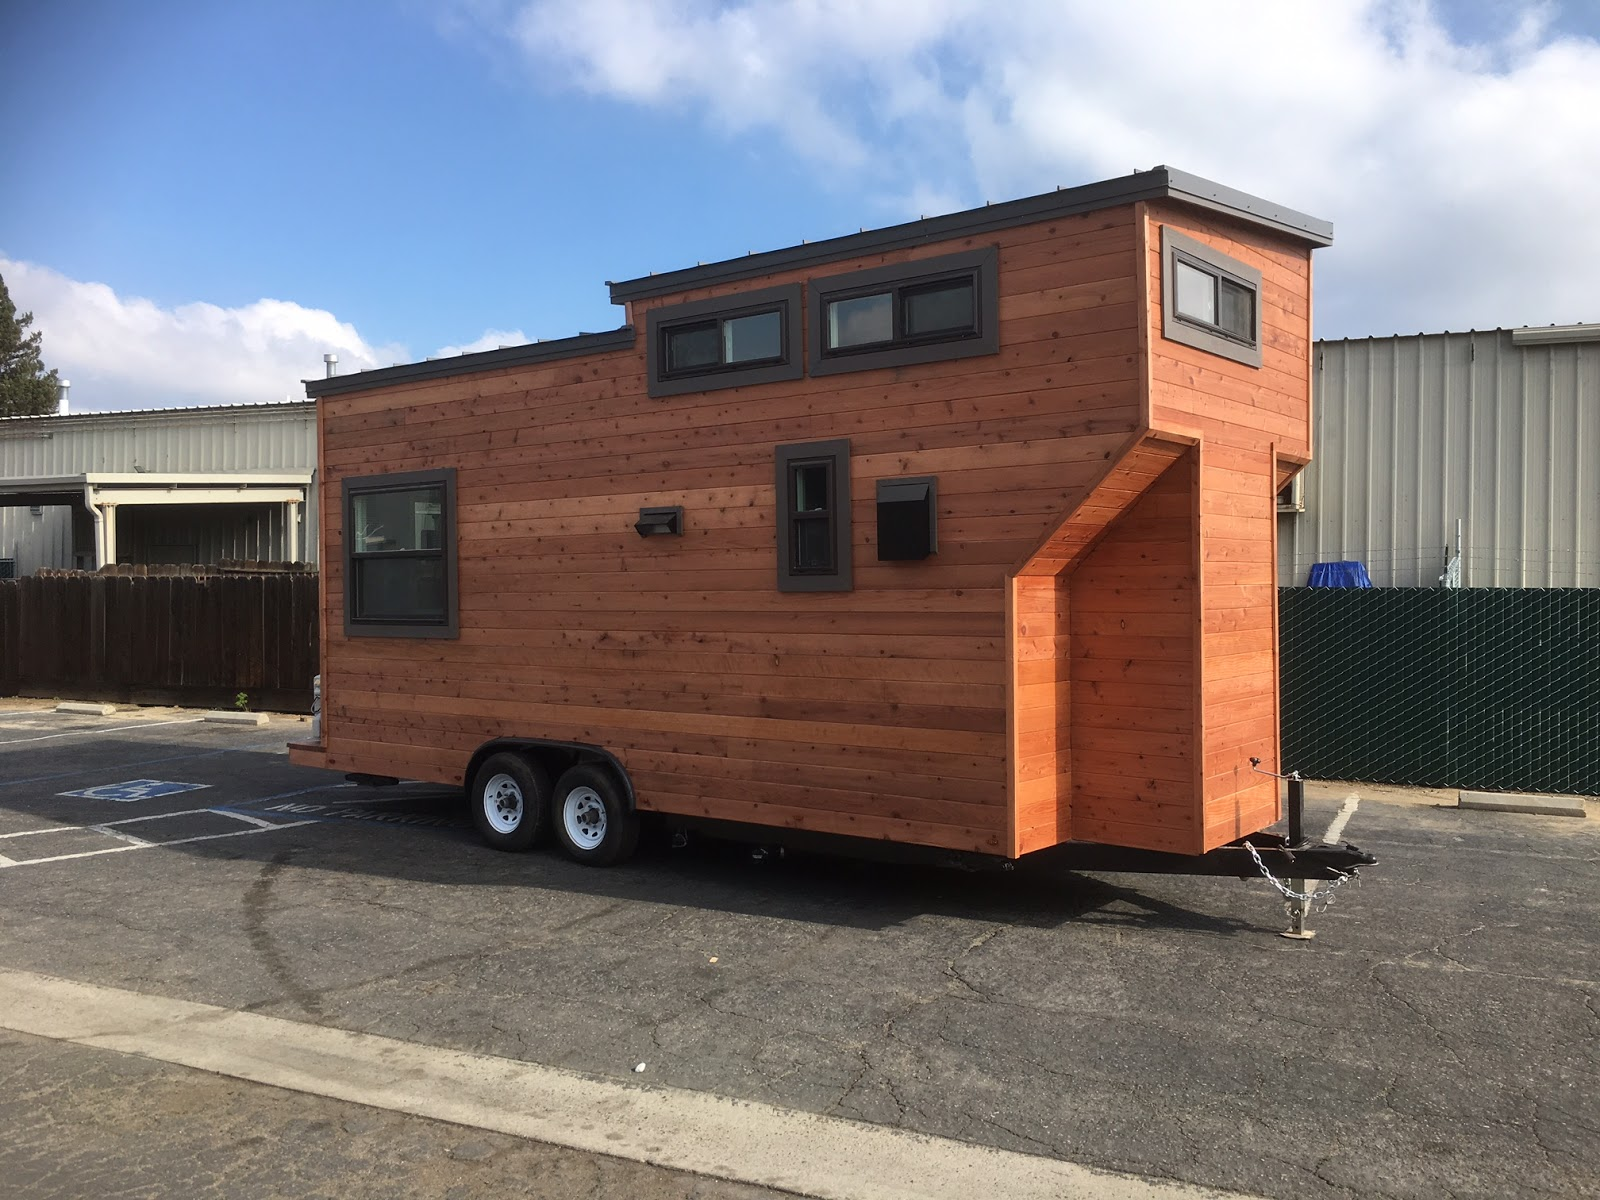 california tiny house 4 - Tiny Houses California